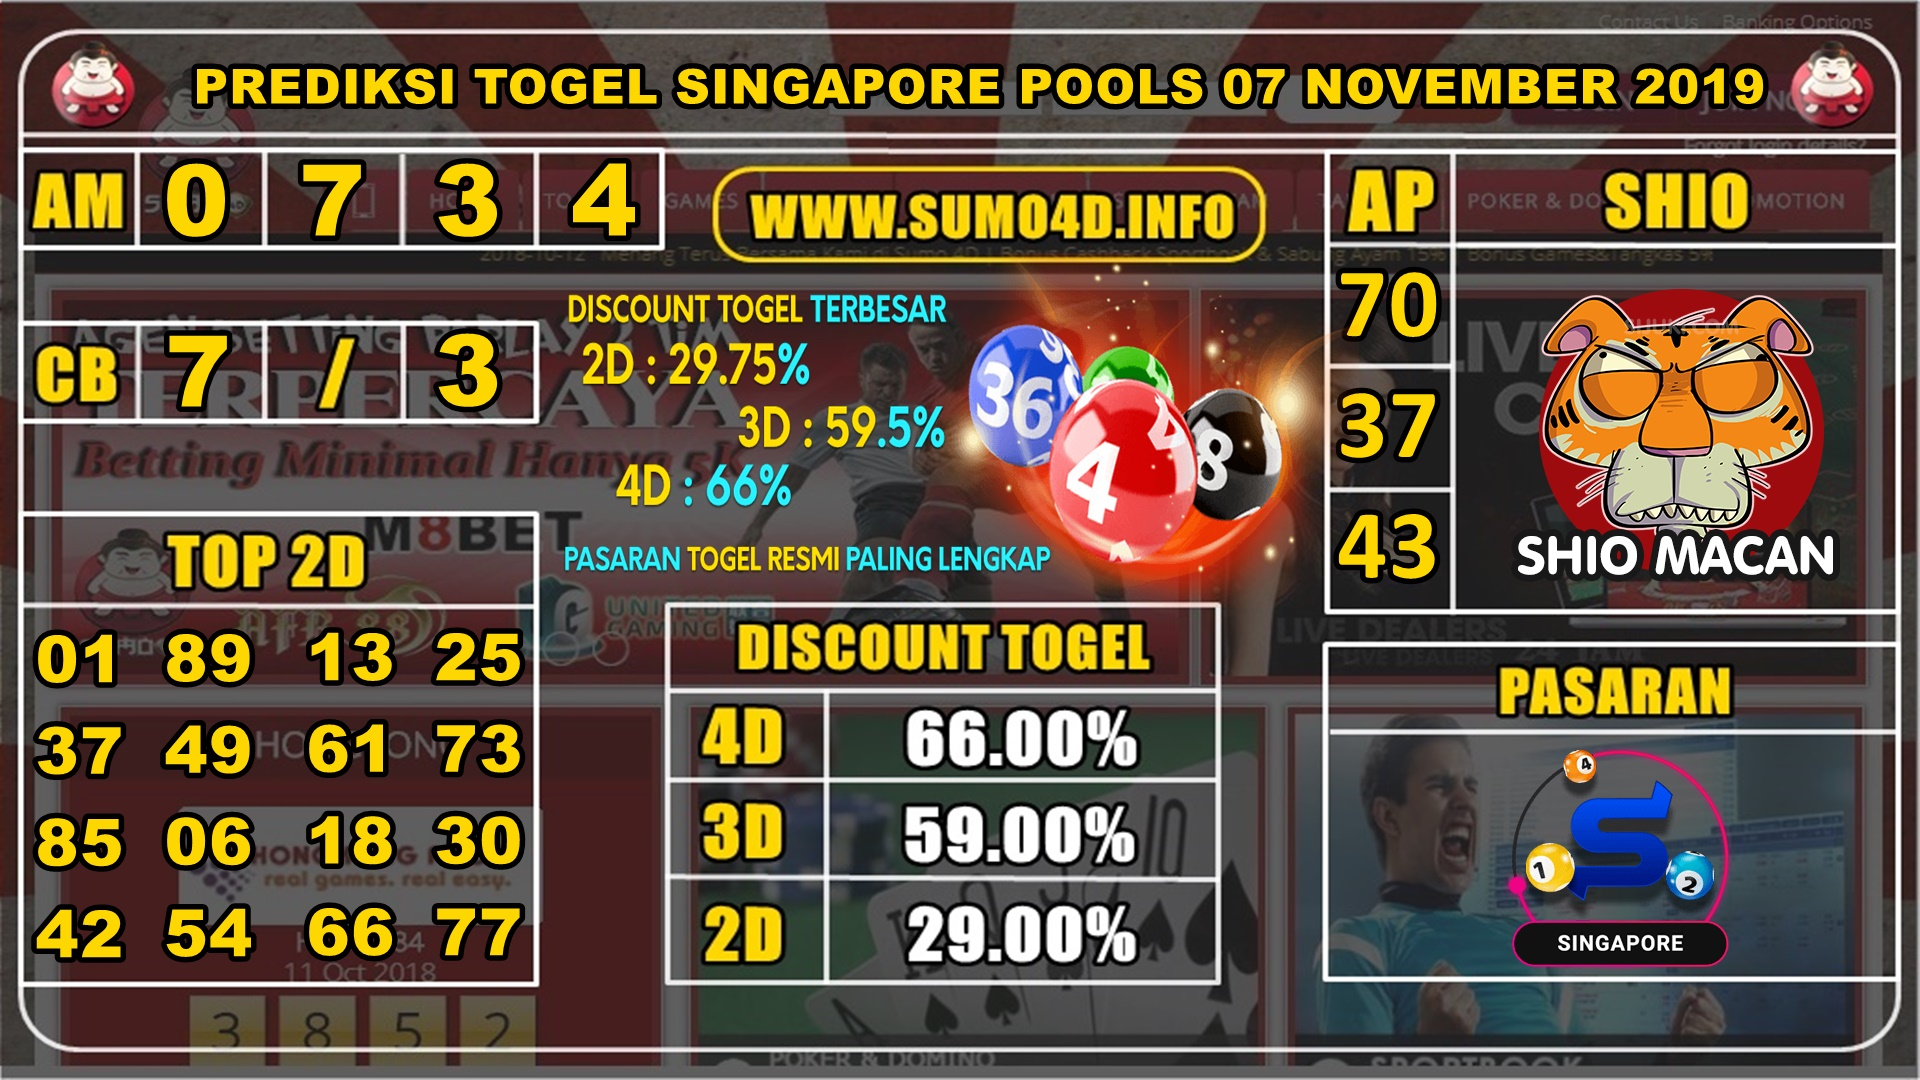 PREDIKSI TOGEL SINGAPORE POOLS 07 NOVEMBER 2019